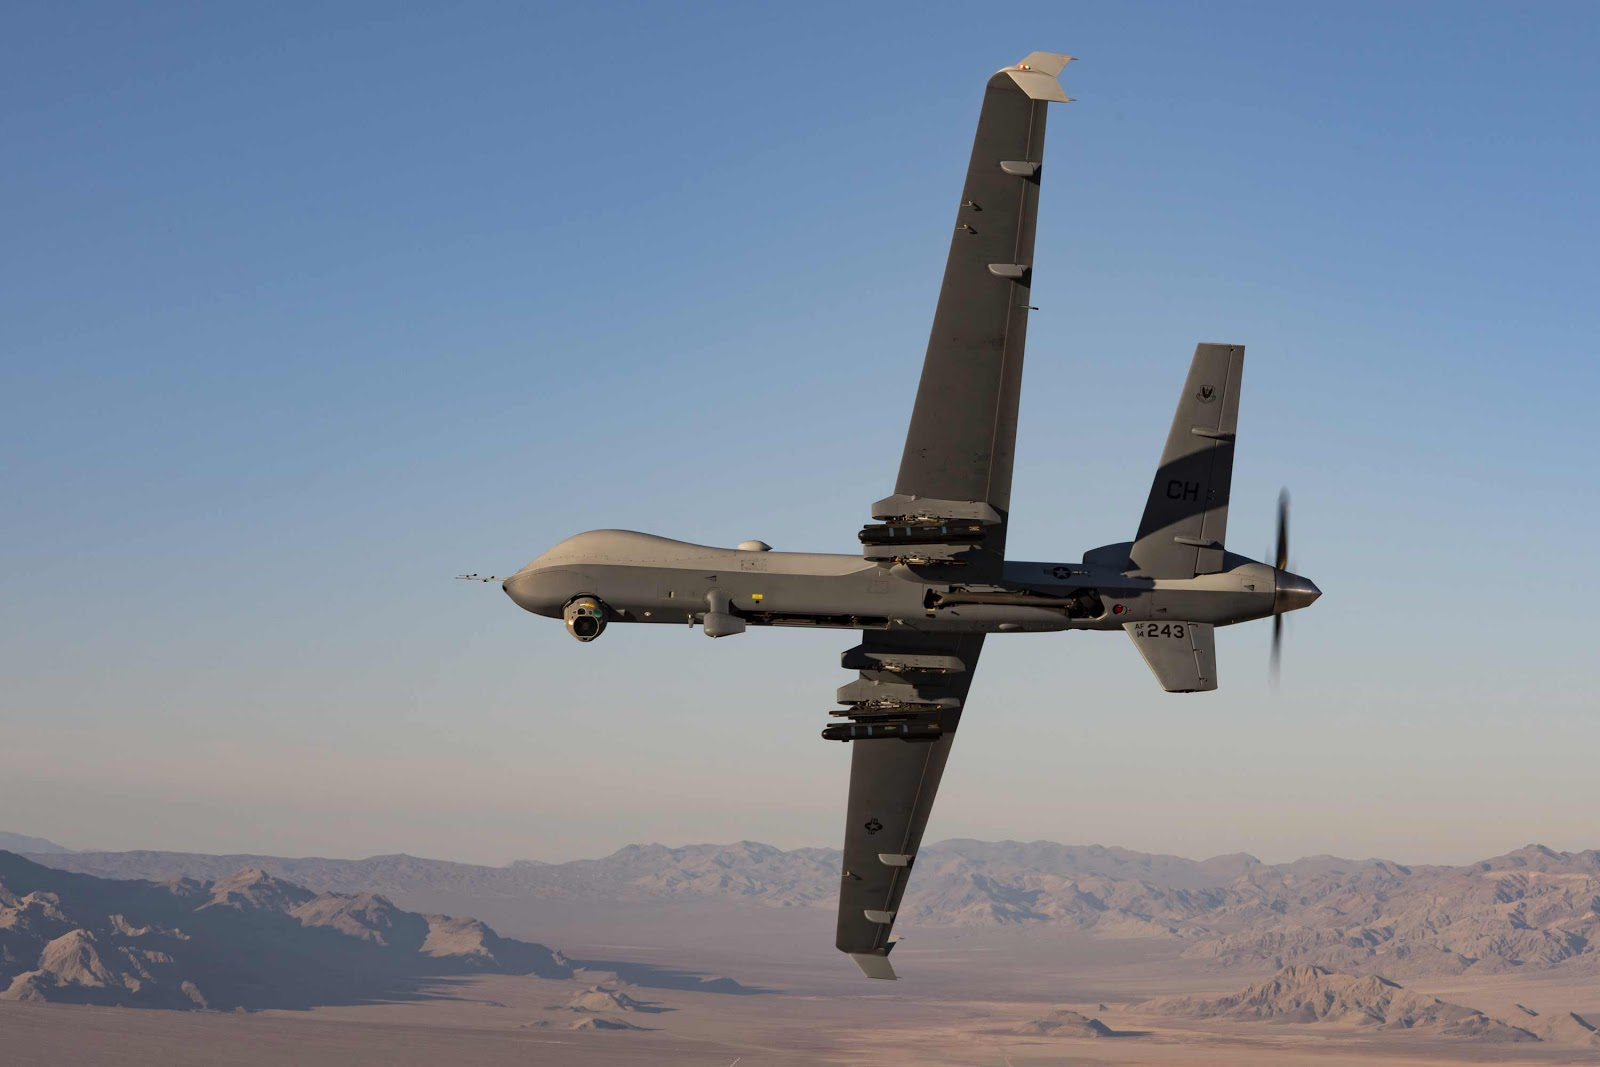 The Air Force Is Looking For A Successor To Its MQ-9 Reaper Drone